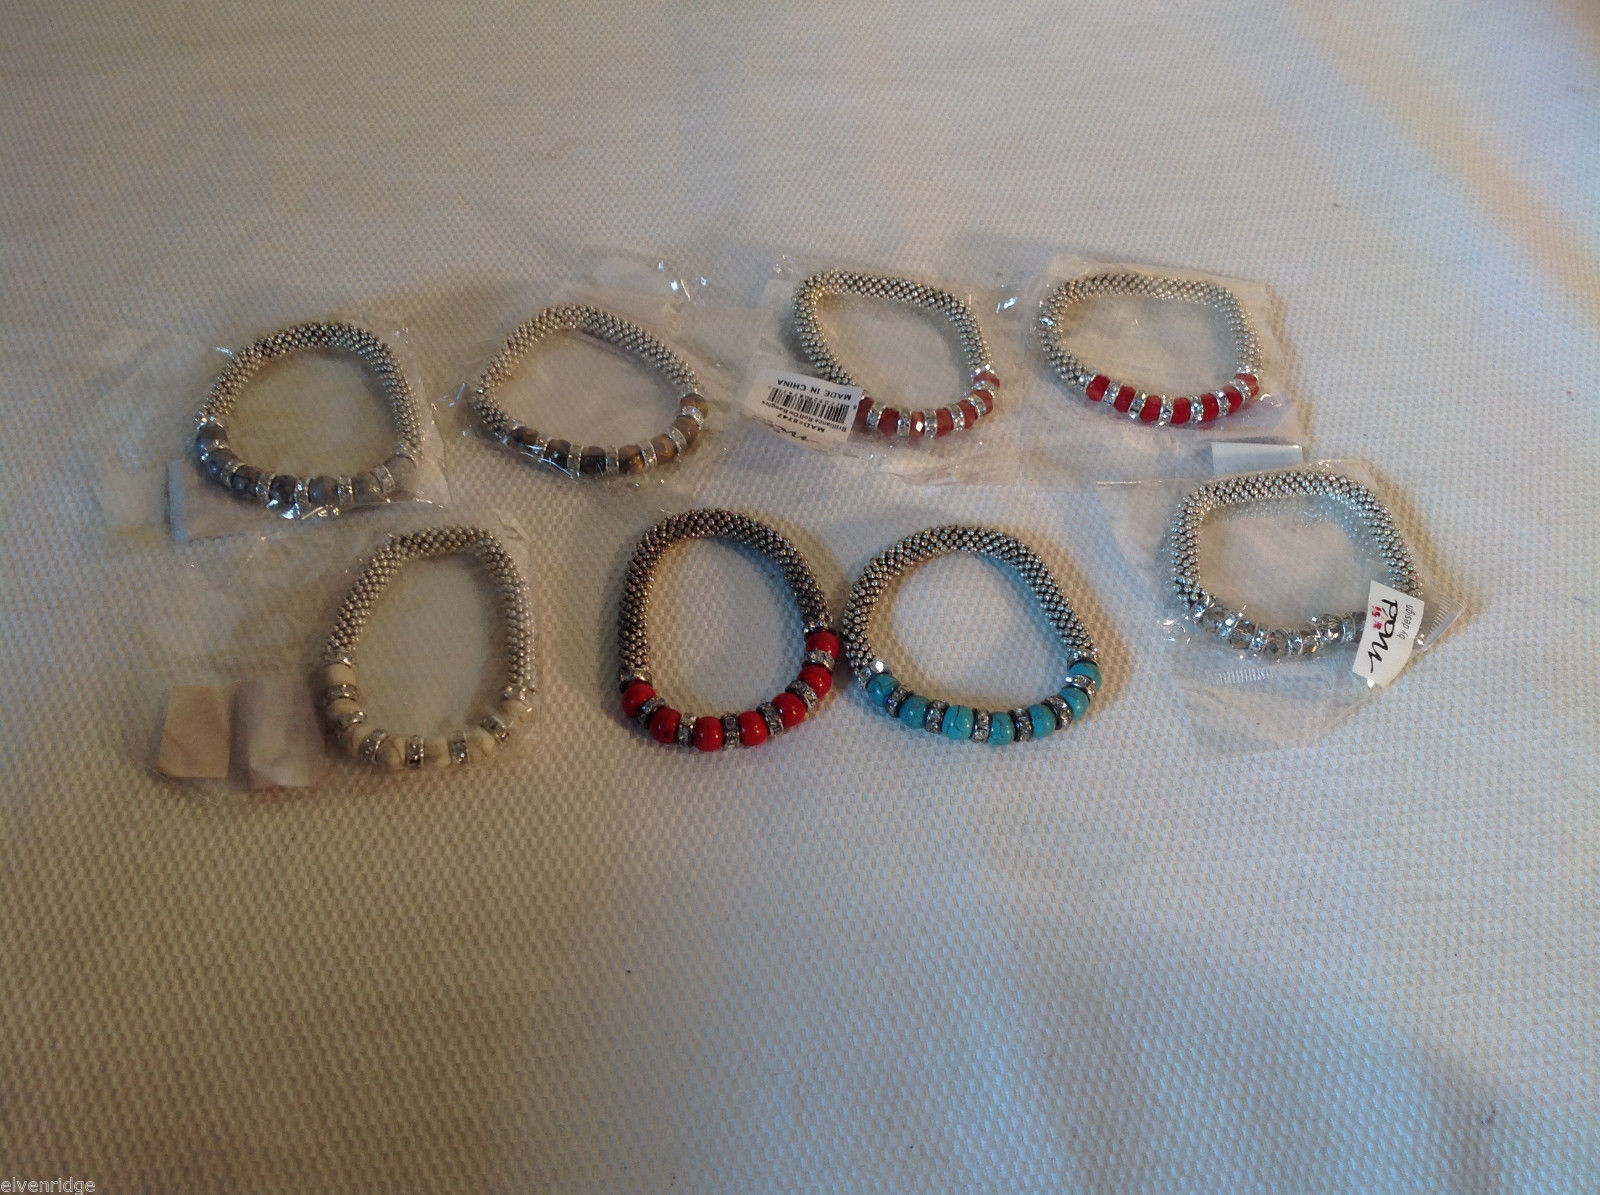 8 pc Mad Style Bracelet Lot - Assorted Stone Colors Stretchy Band